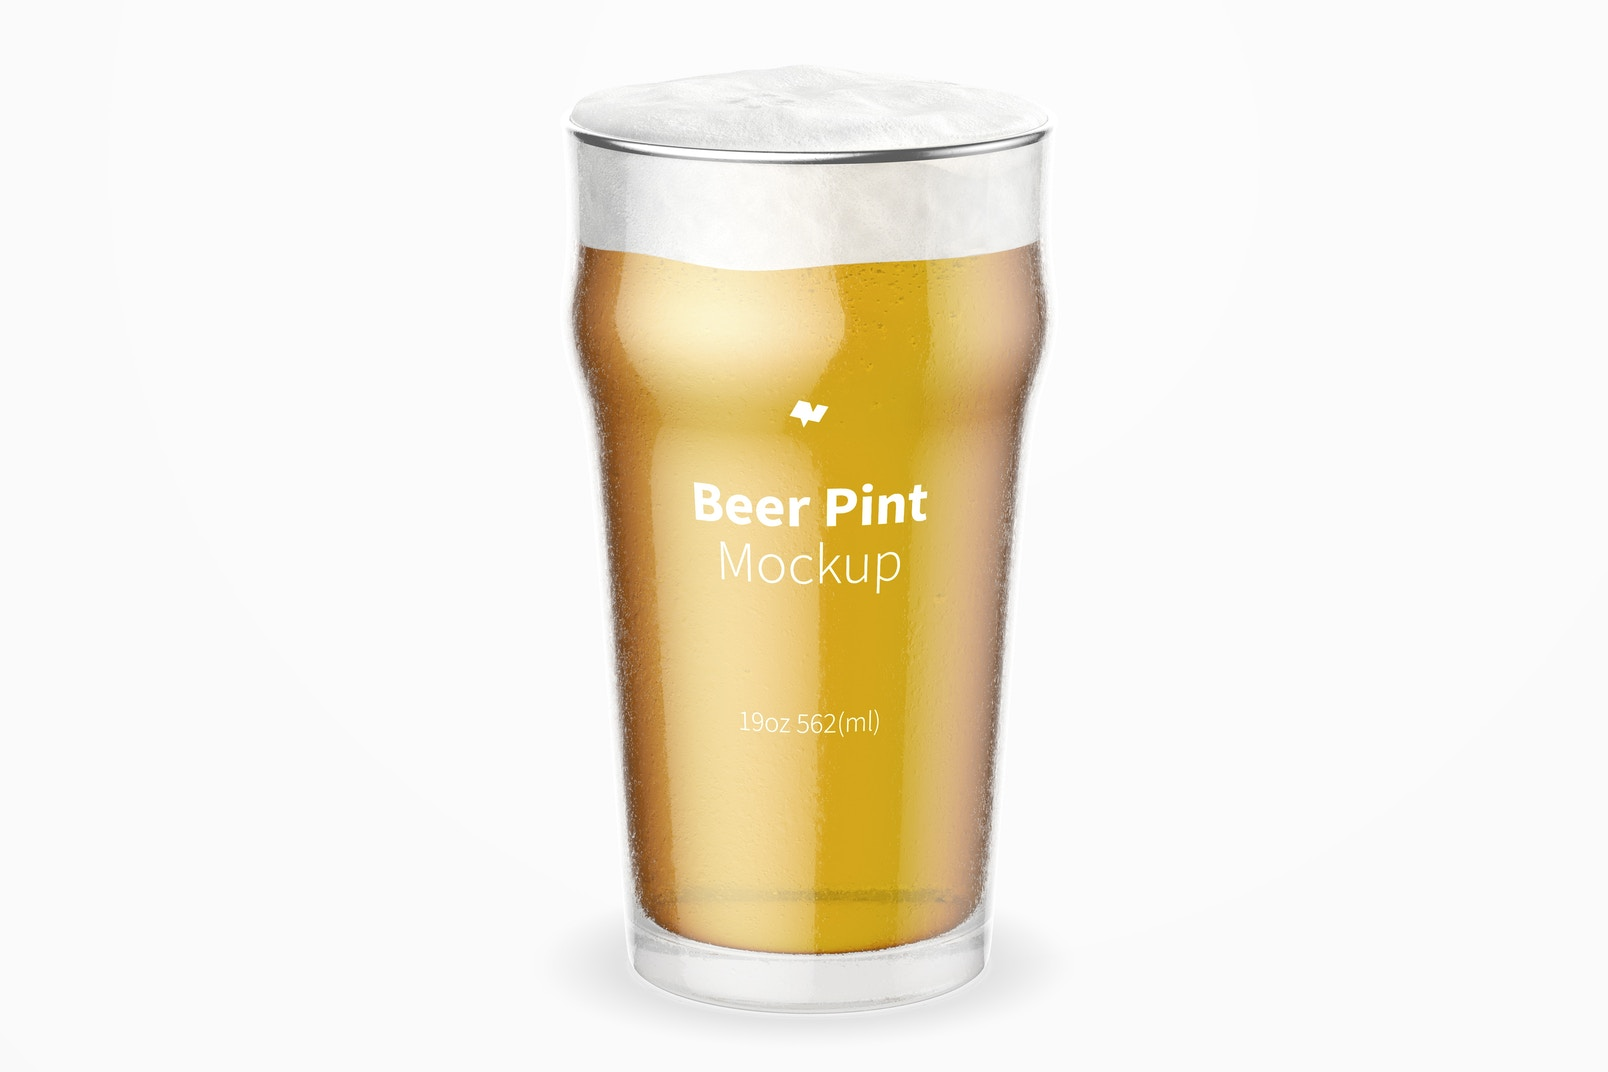 19 oz Beer Nonic Pint Glass Mockup, Front View